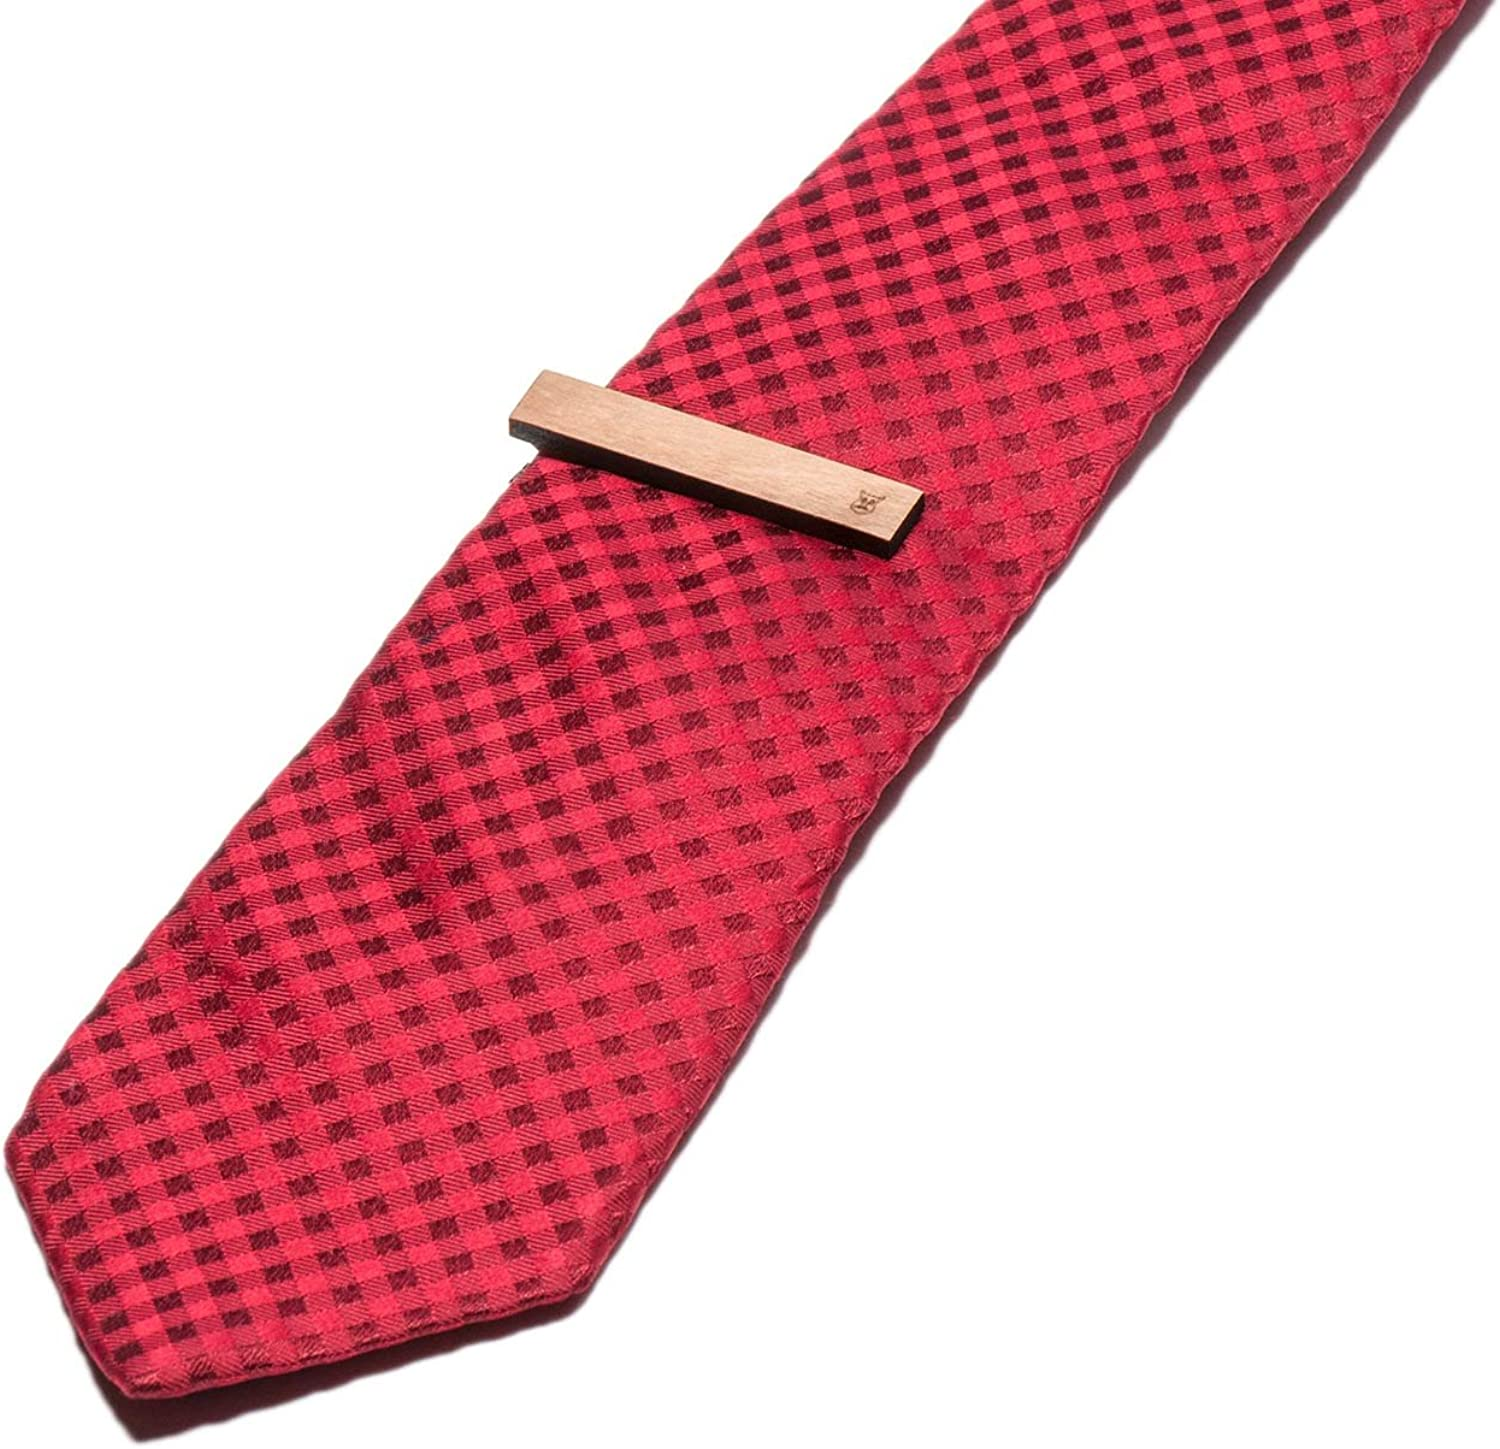 Wooden Accessories Company Wooden Tie Clips with Laser Engraved Scared Pig Design Cherry Wood Tie Bar Engraved in The USA